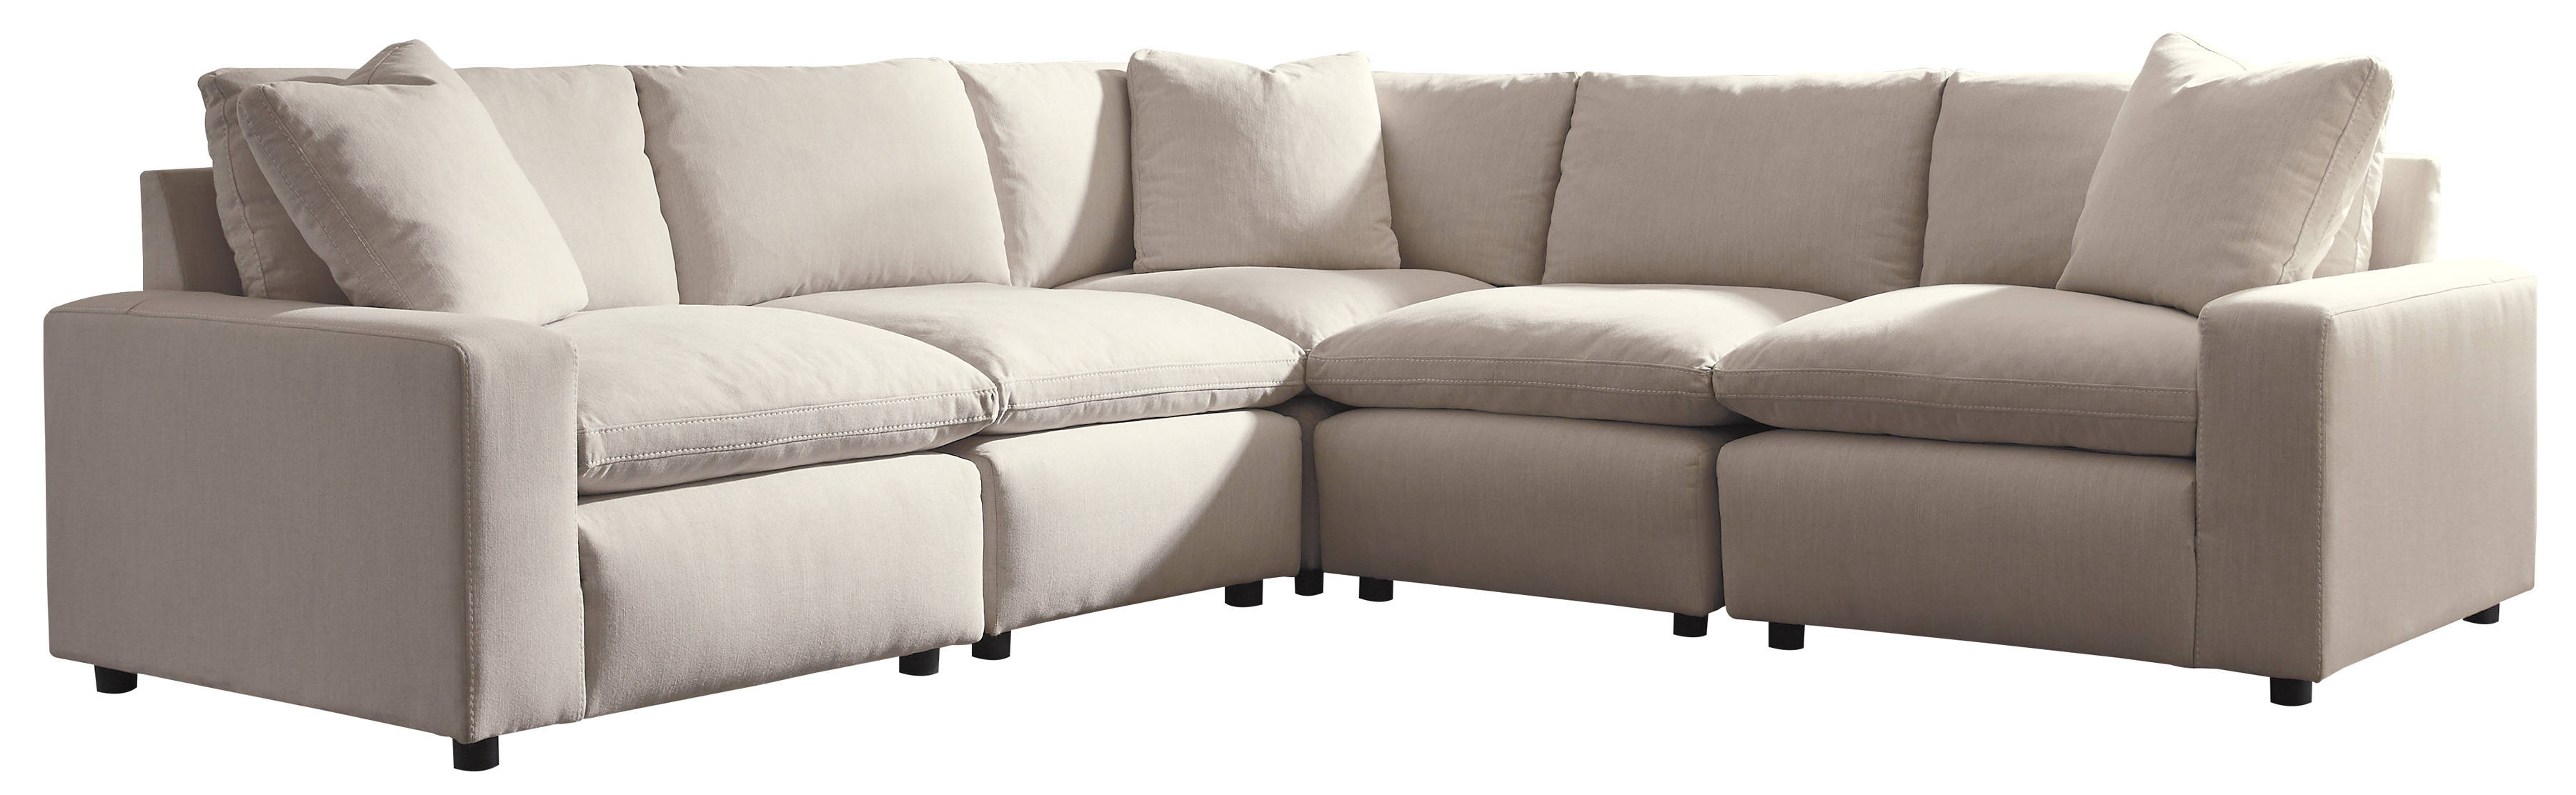 Ashley Furniture Savesto Ivory 5pc Sectional The Classy Home